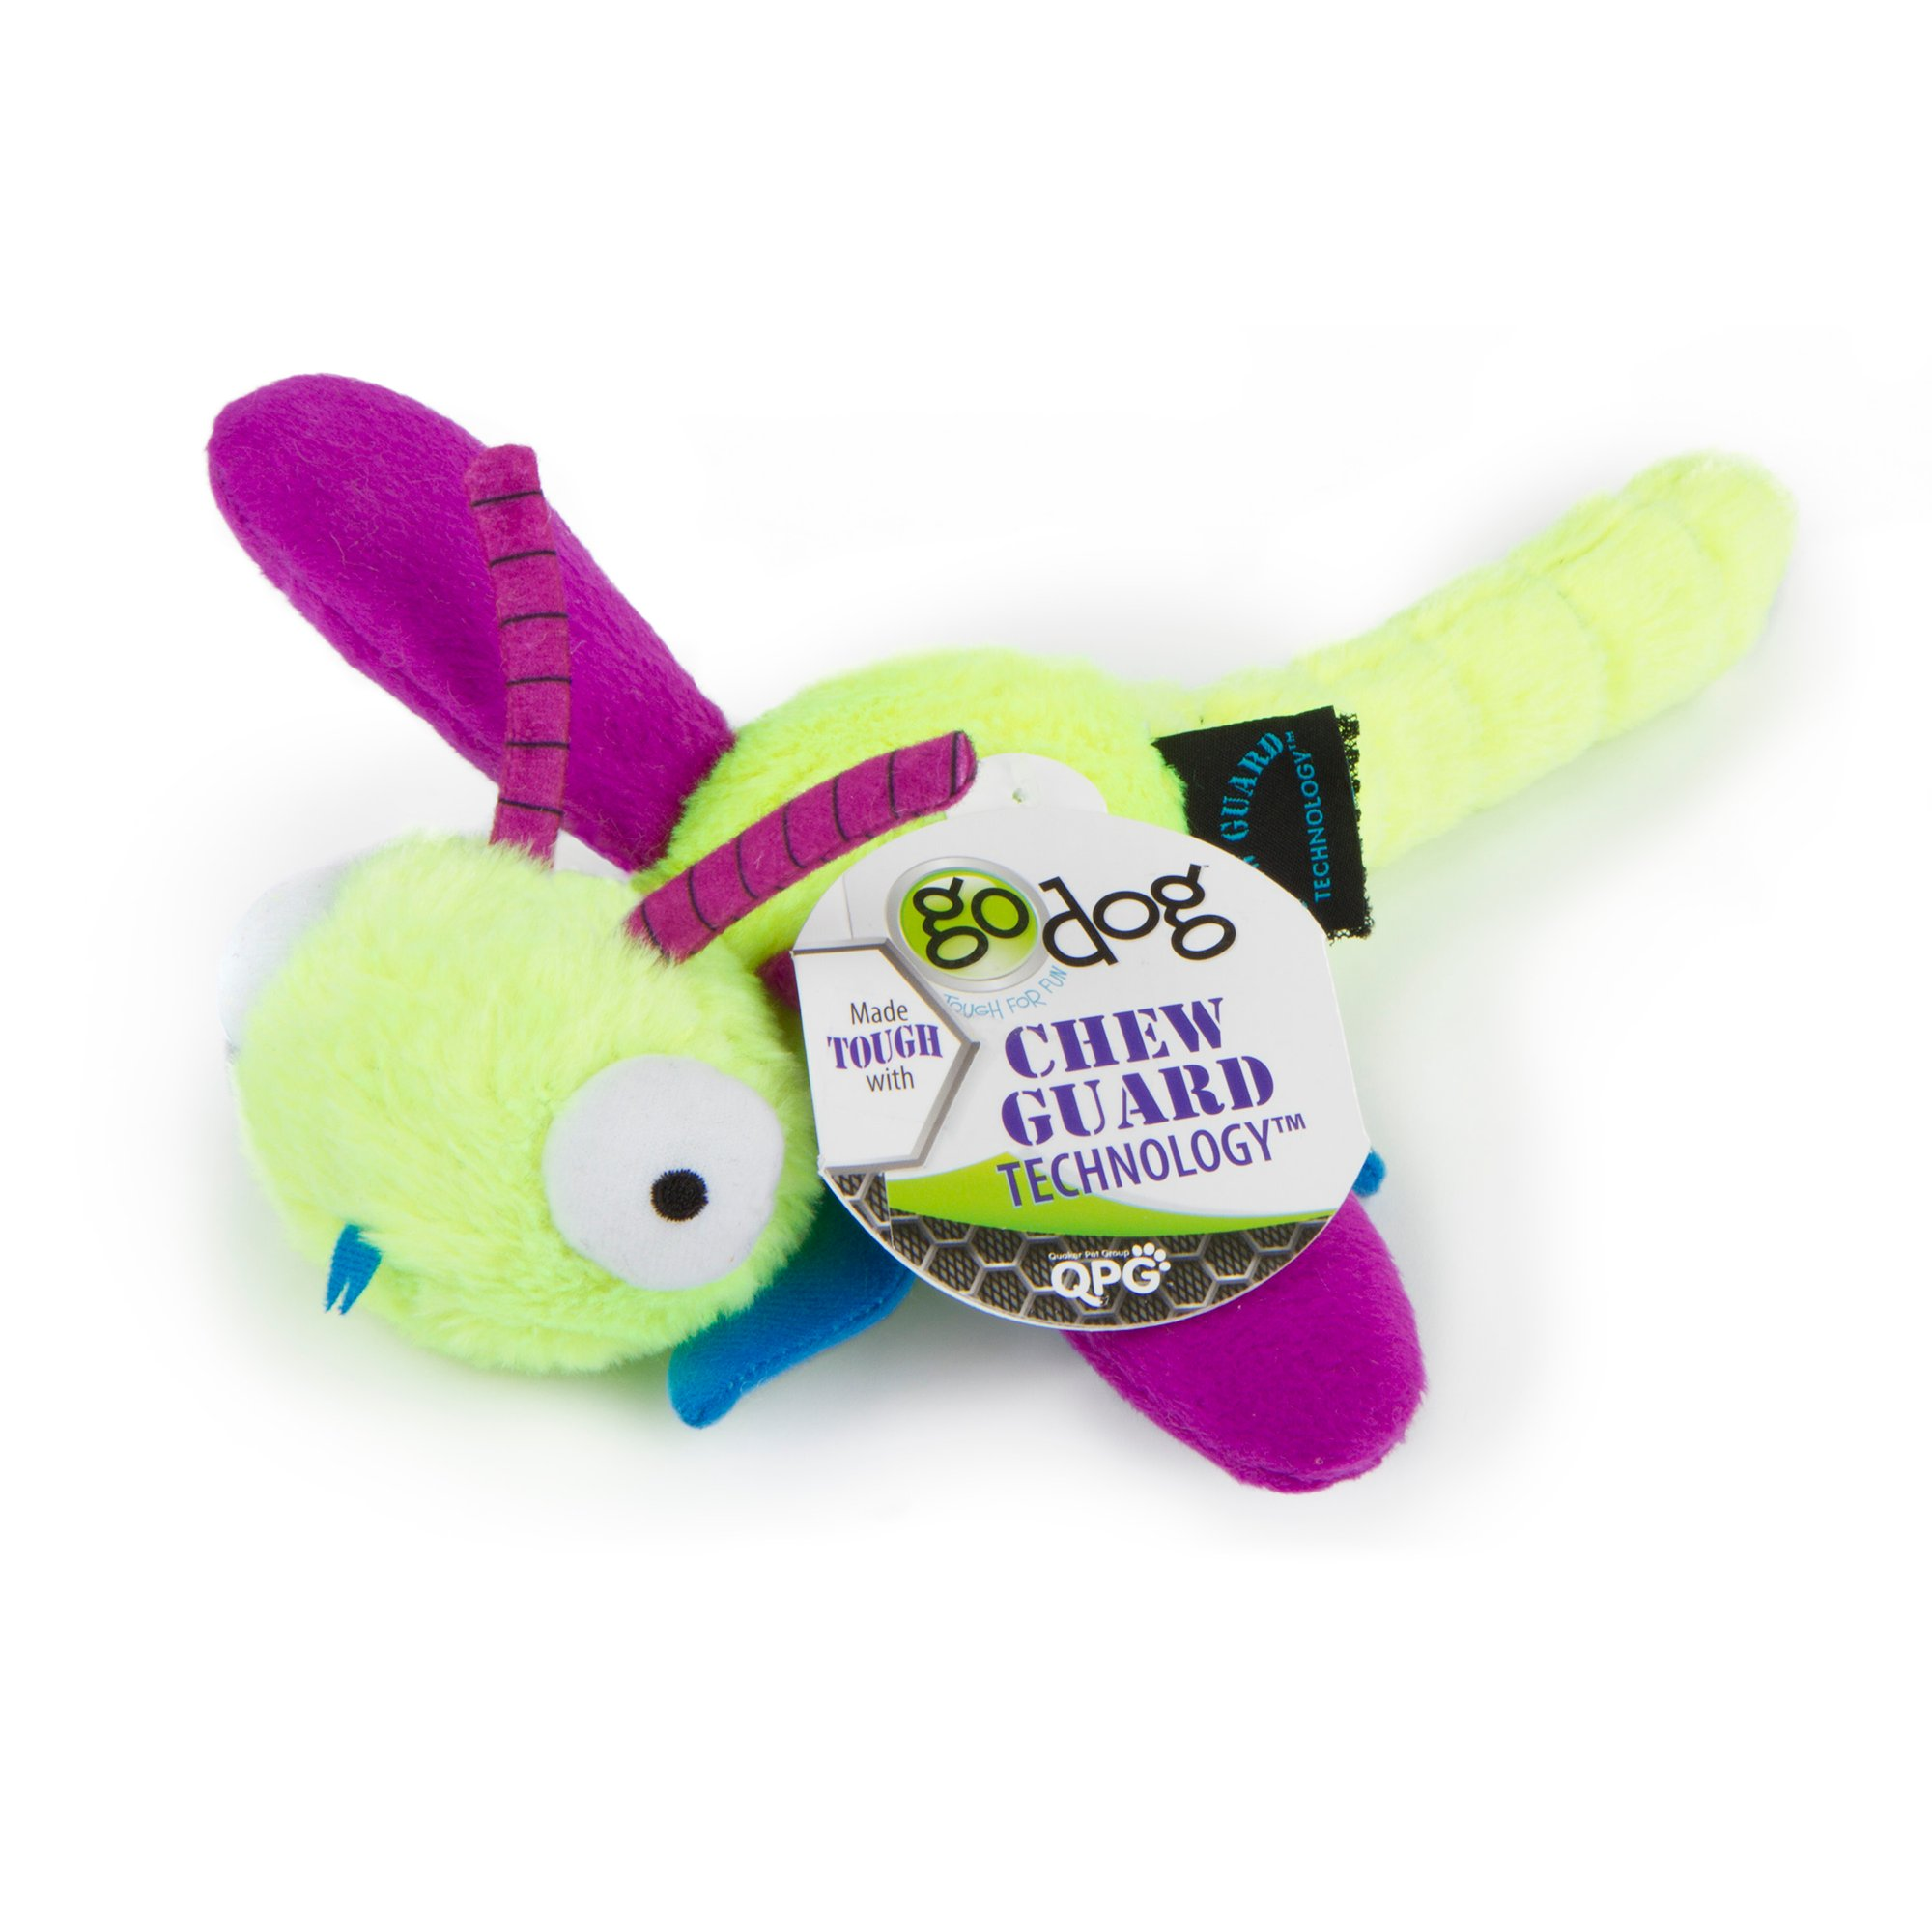 Image of Godog Bugs Dragon Fly Lime Large With Chew Guard Green, Large, Green / Purple